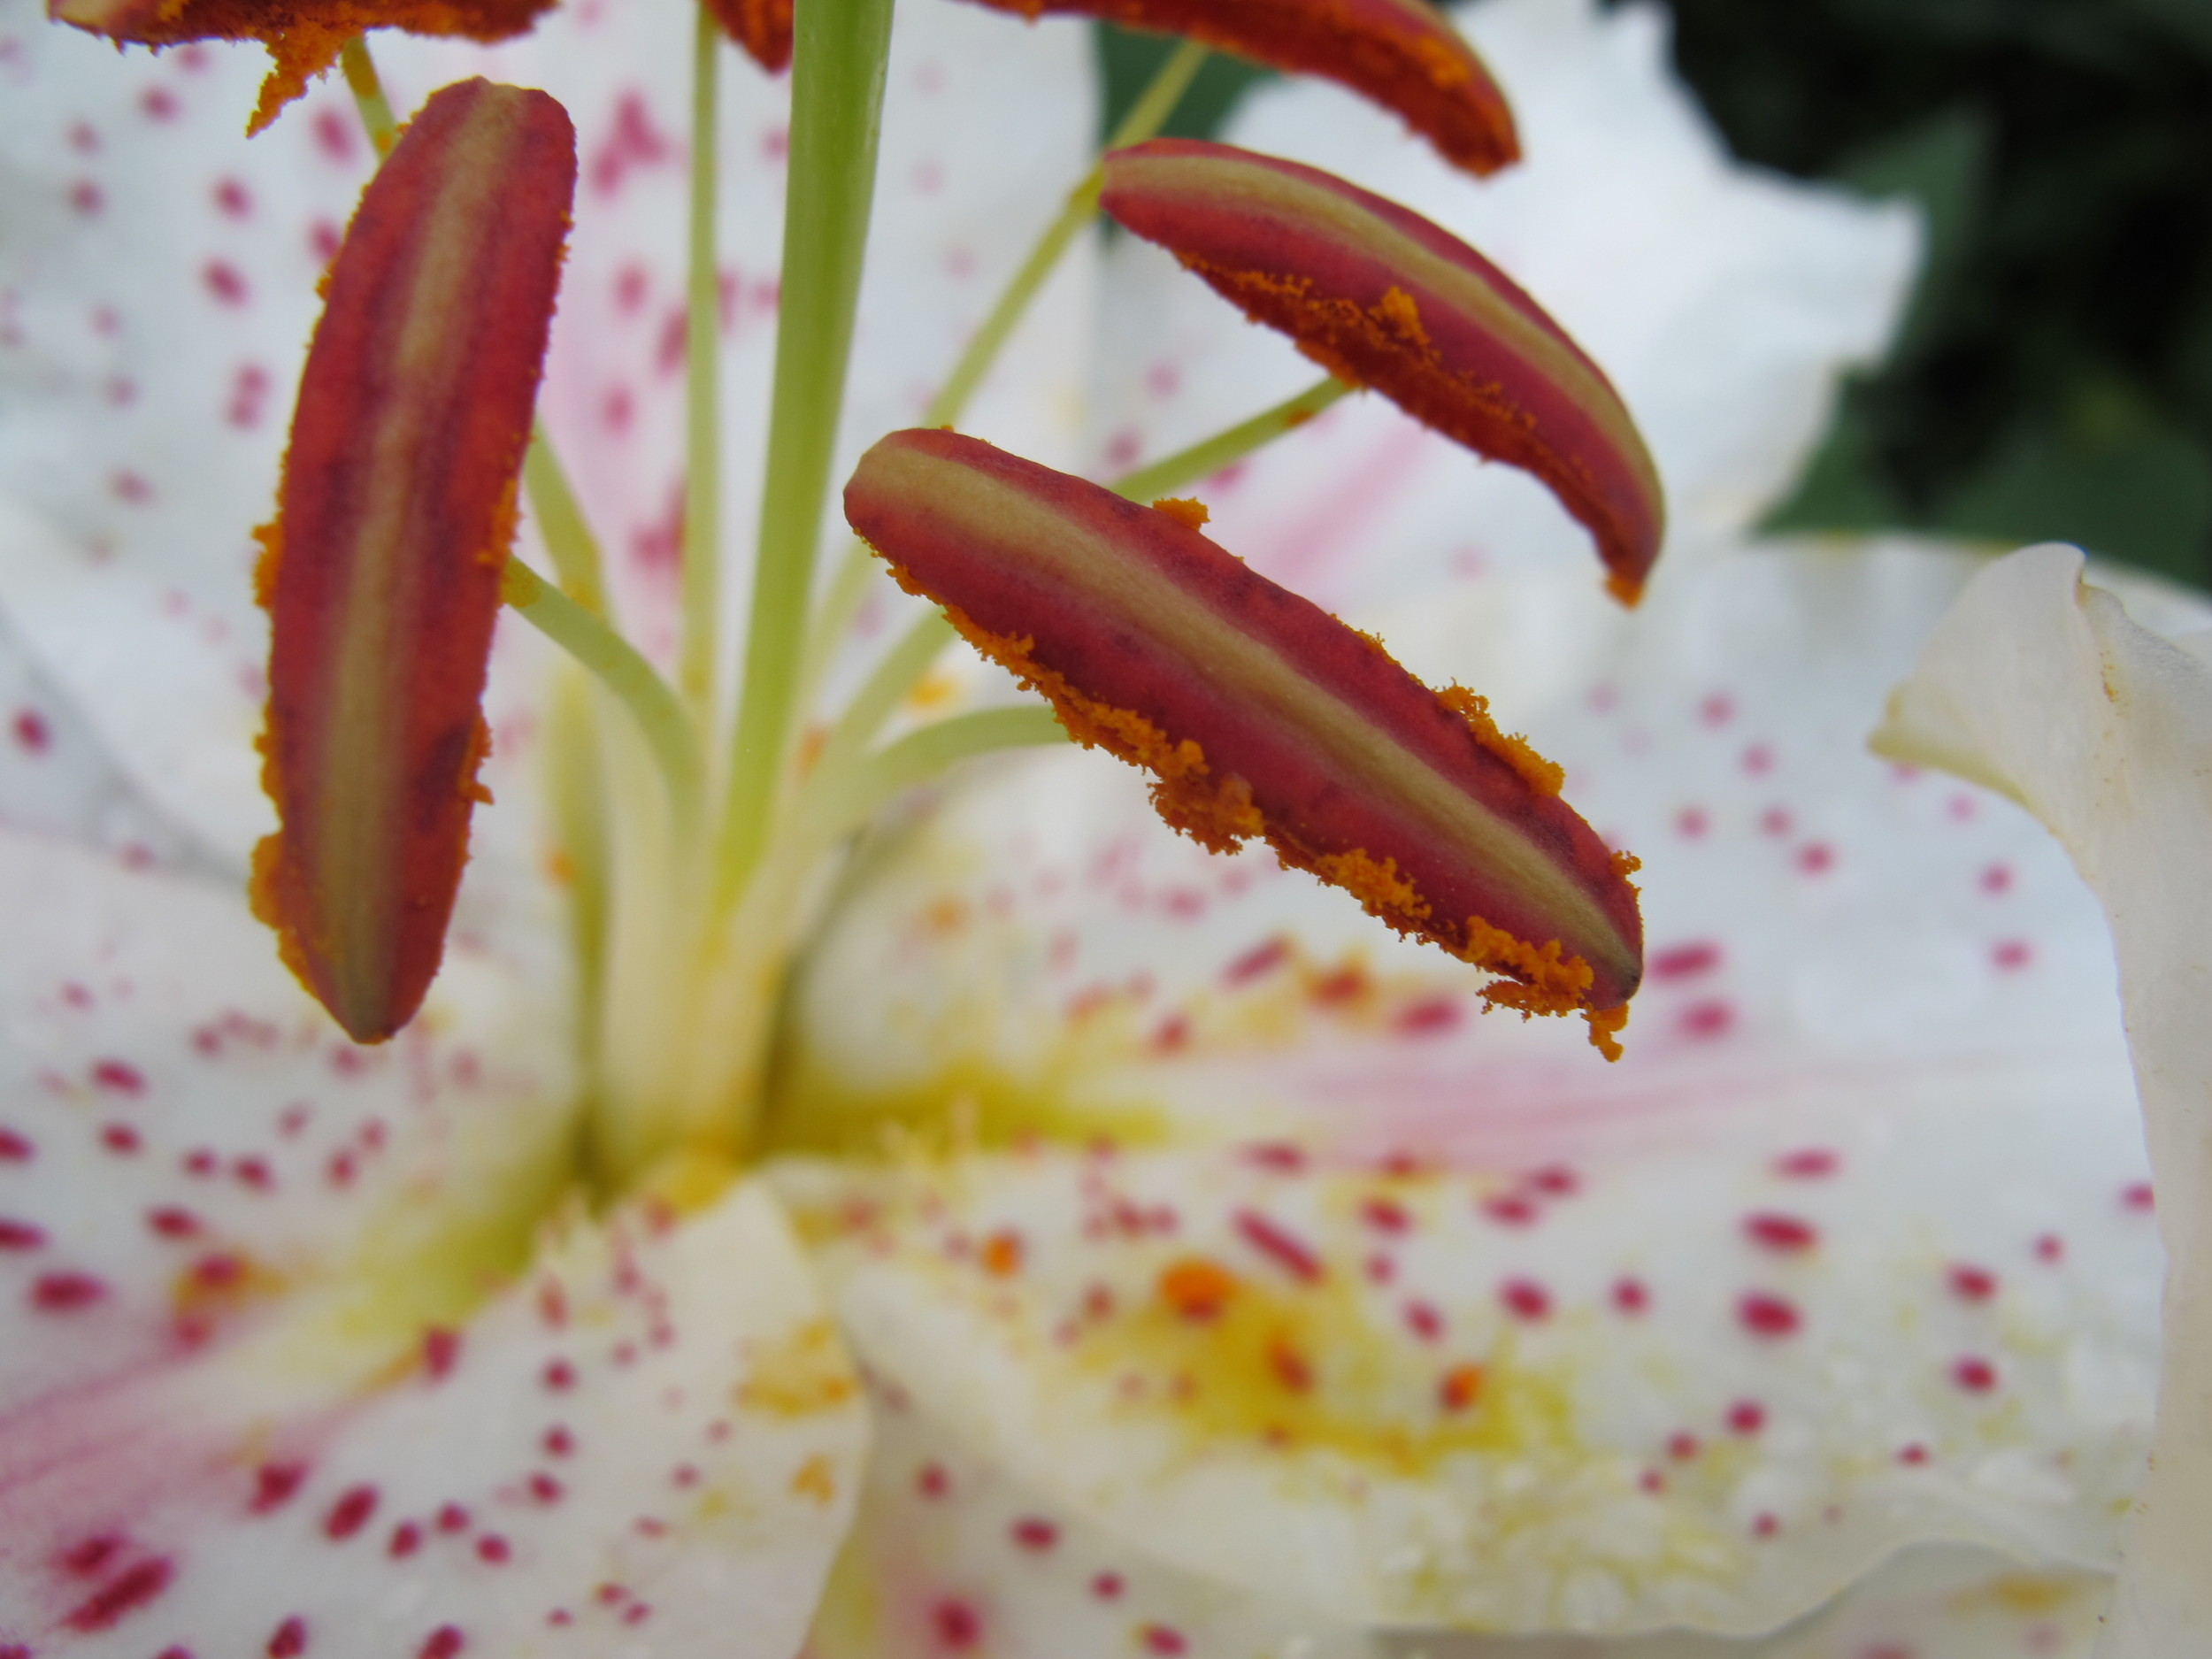 Can you identify the parts of this lily?